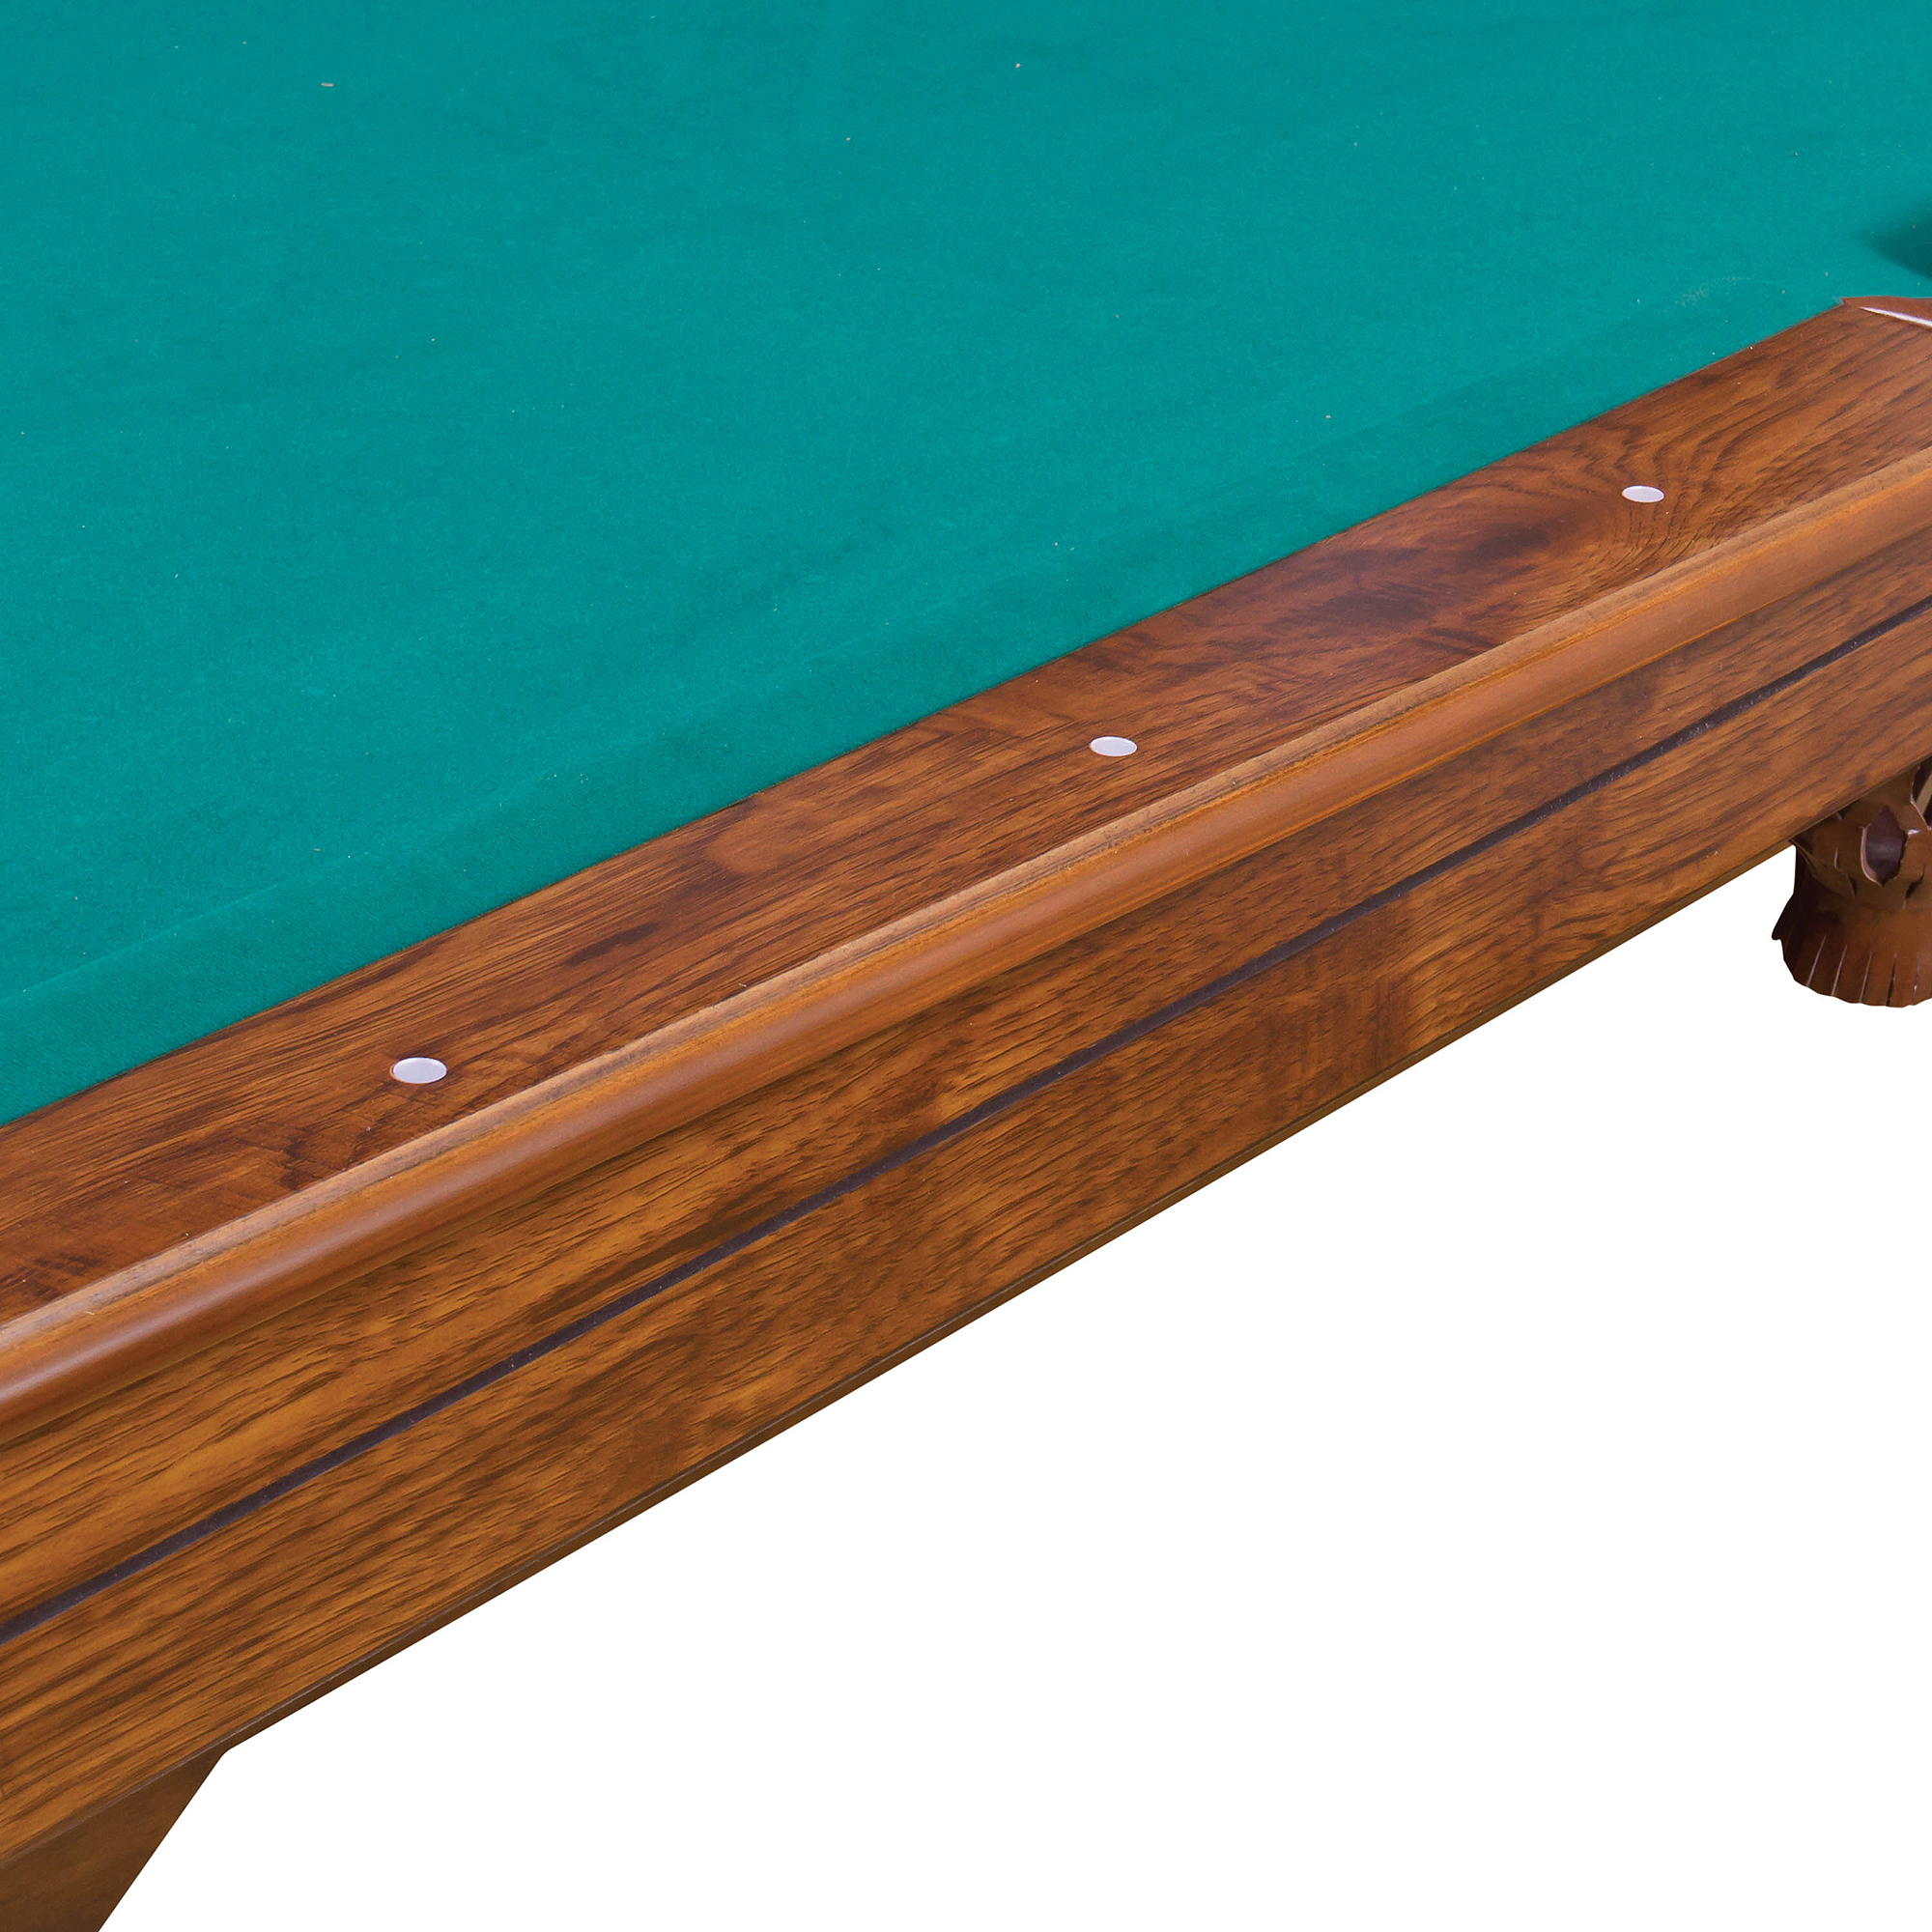 Folding legs pool table for sale - Folding Legs Pool Table For Sale 39